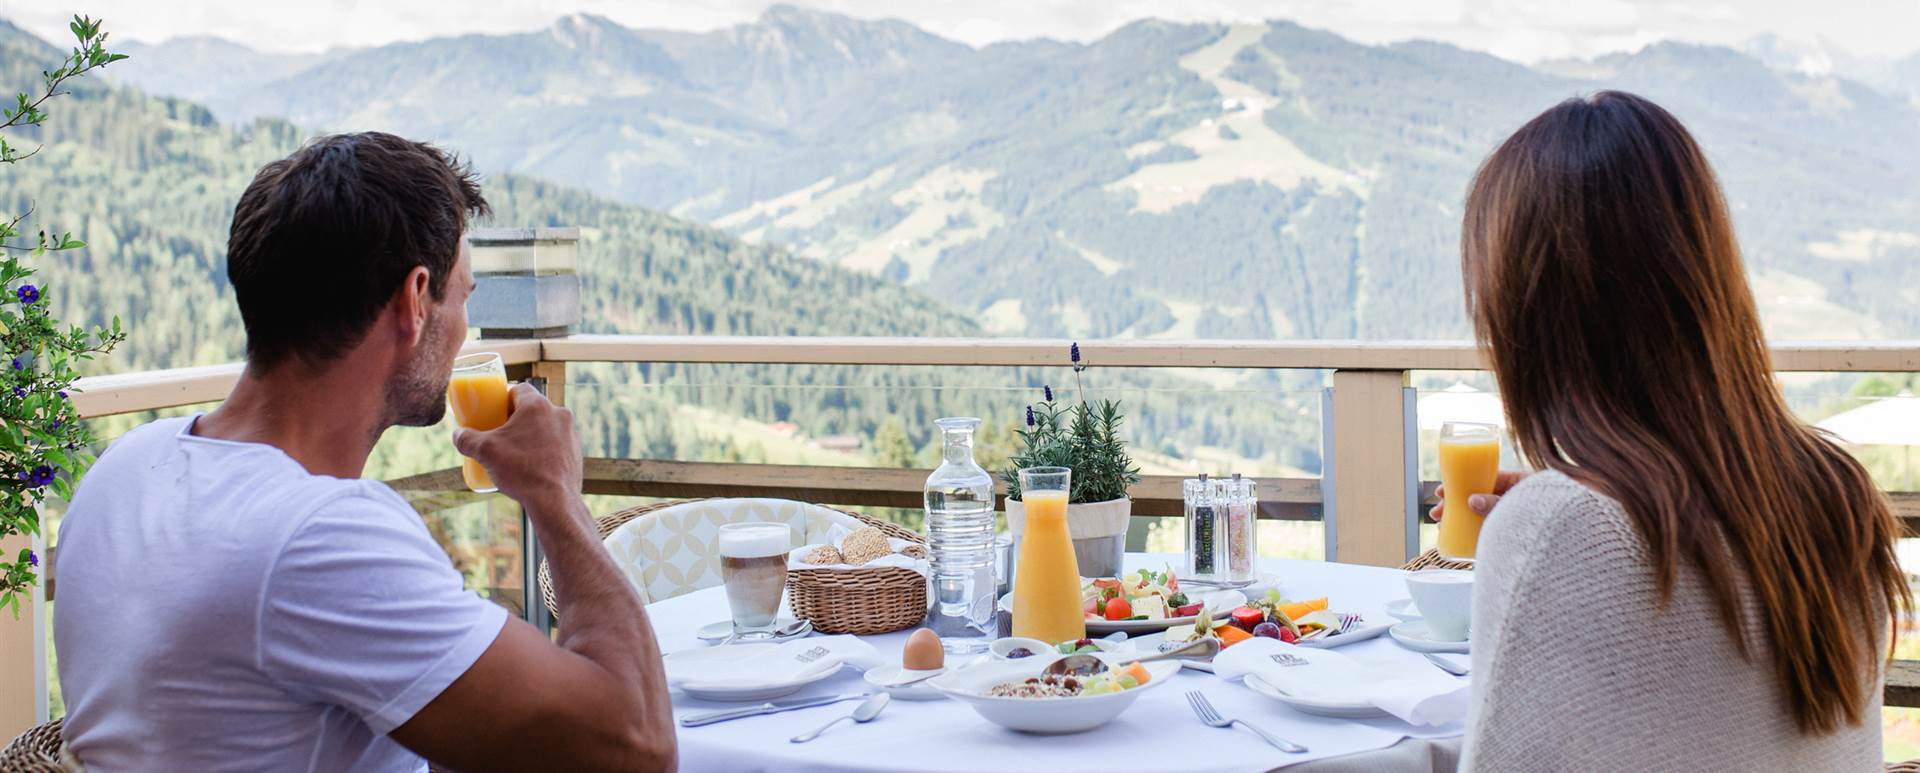 Couple having breakfast on the terrace with a view of the mountain panorama